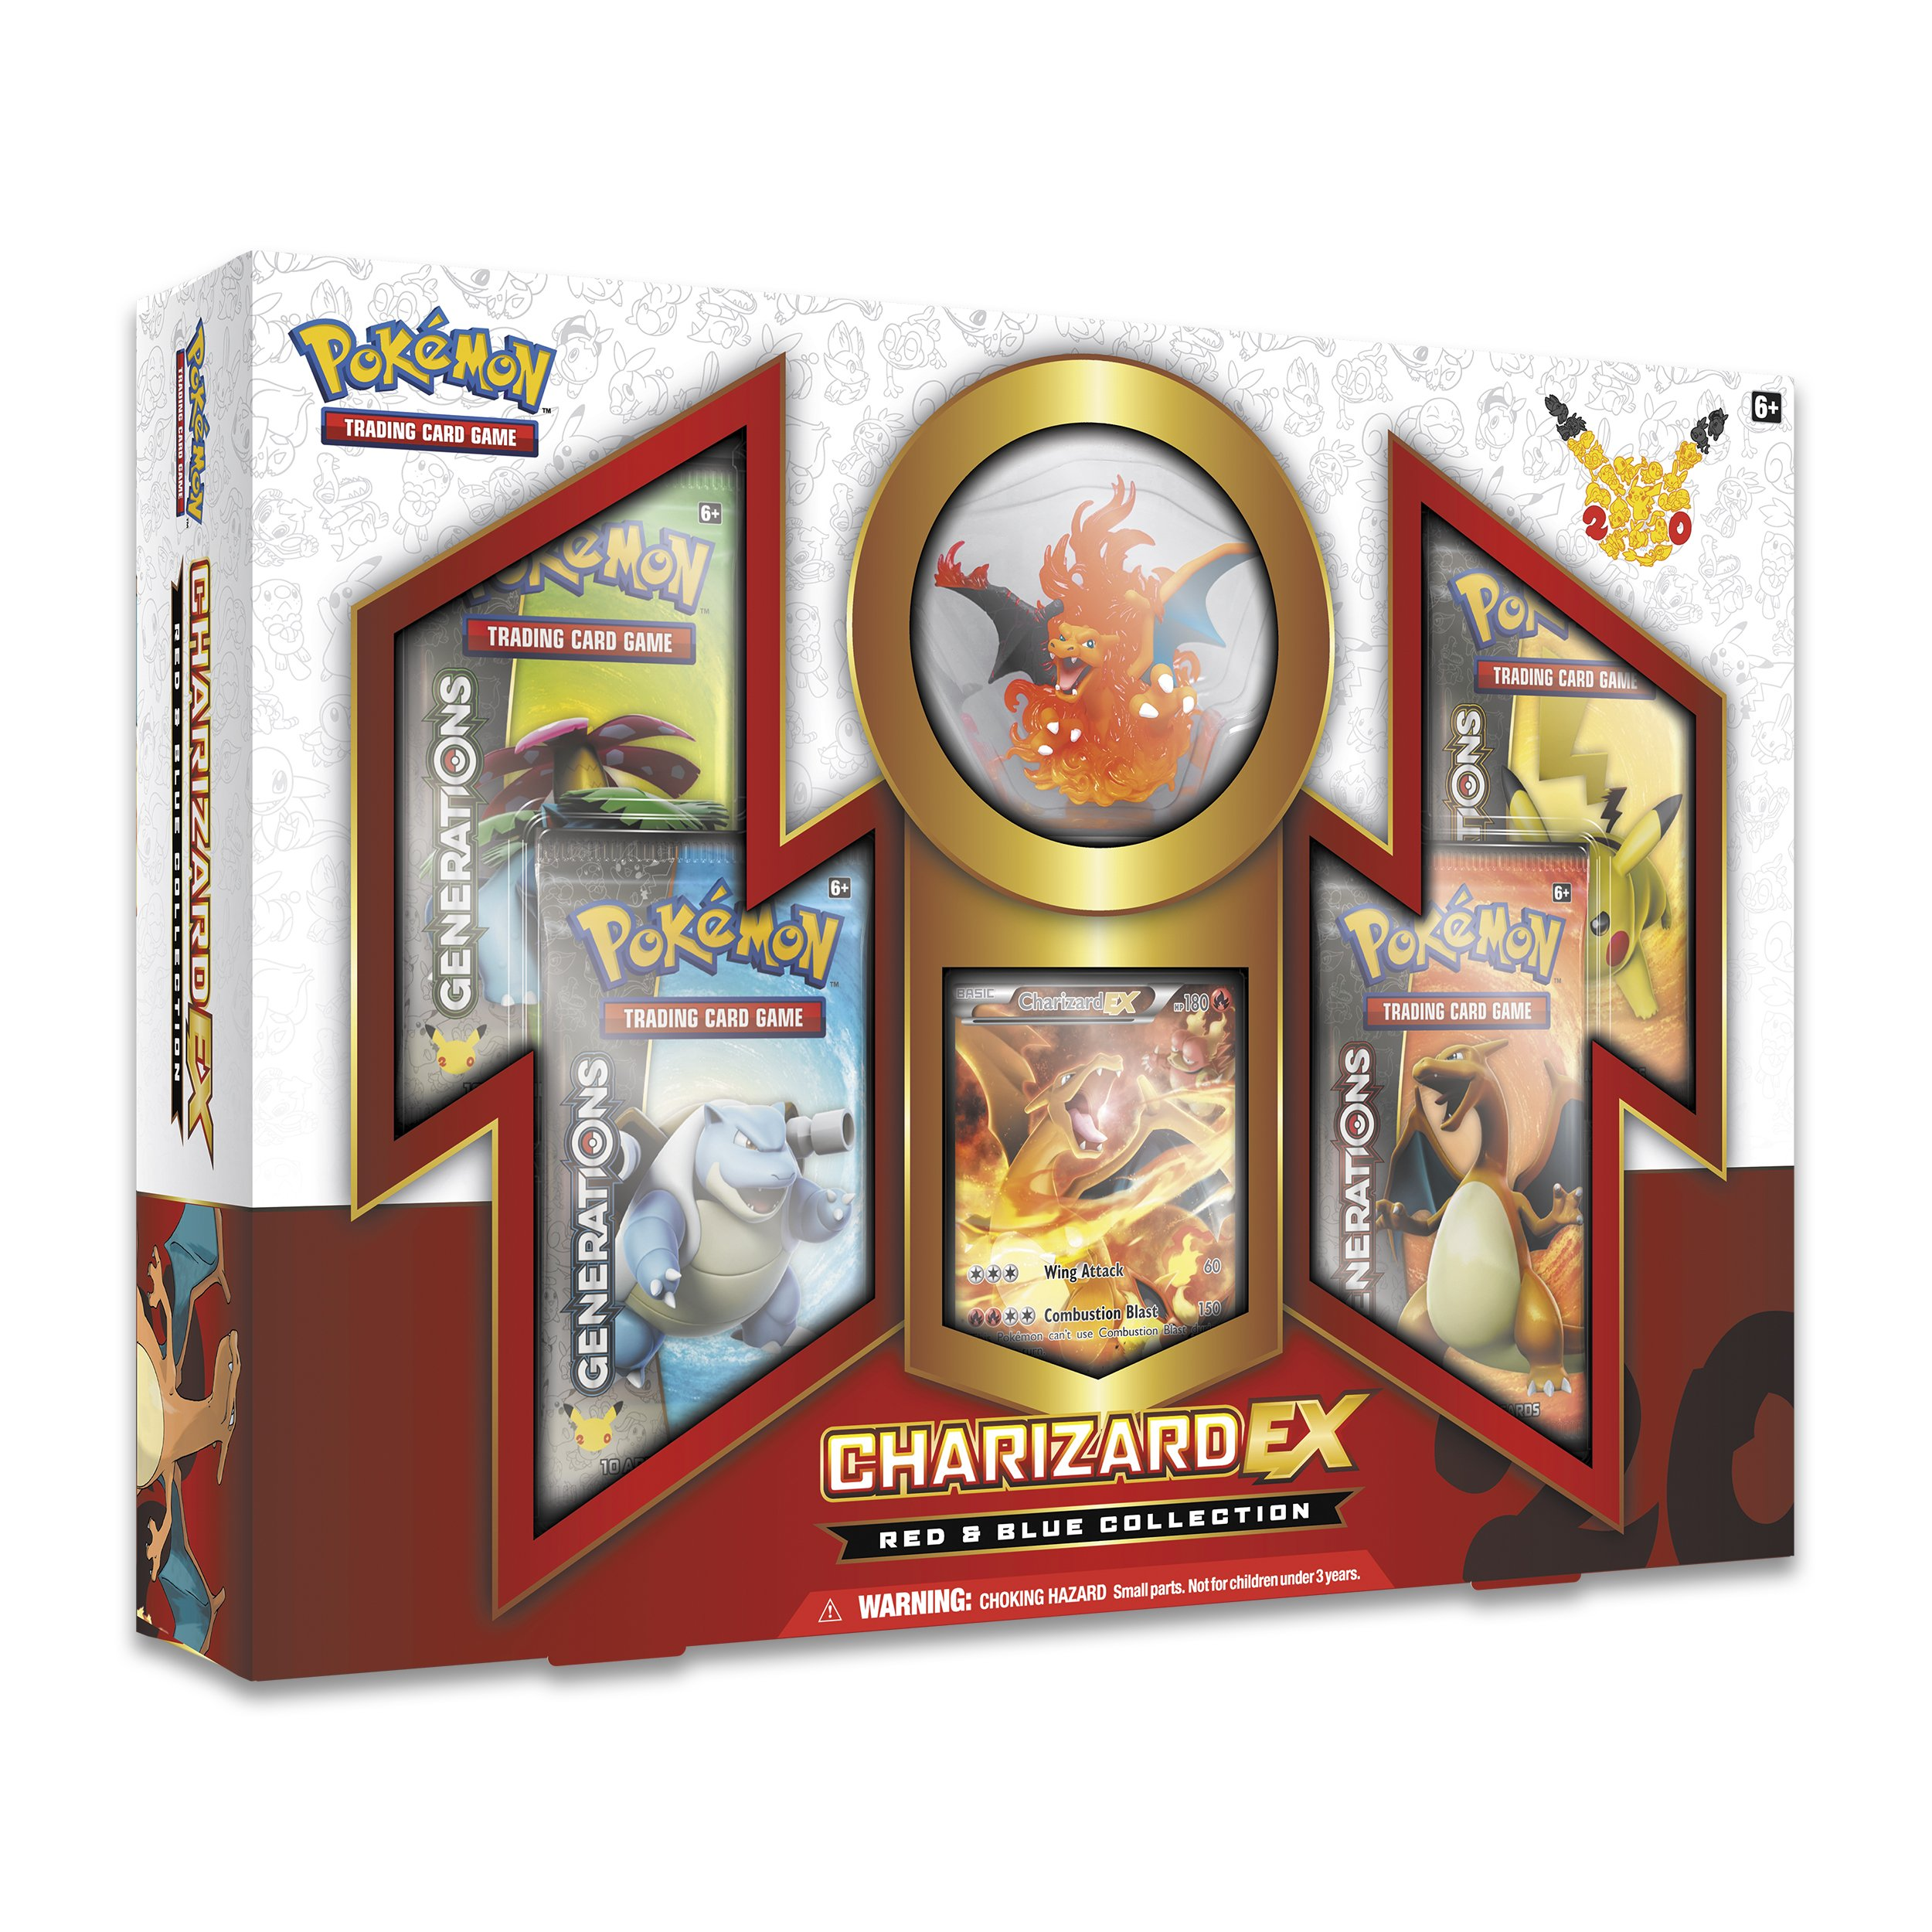 Pokemon Red & Blue Collection: Charizard EX